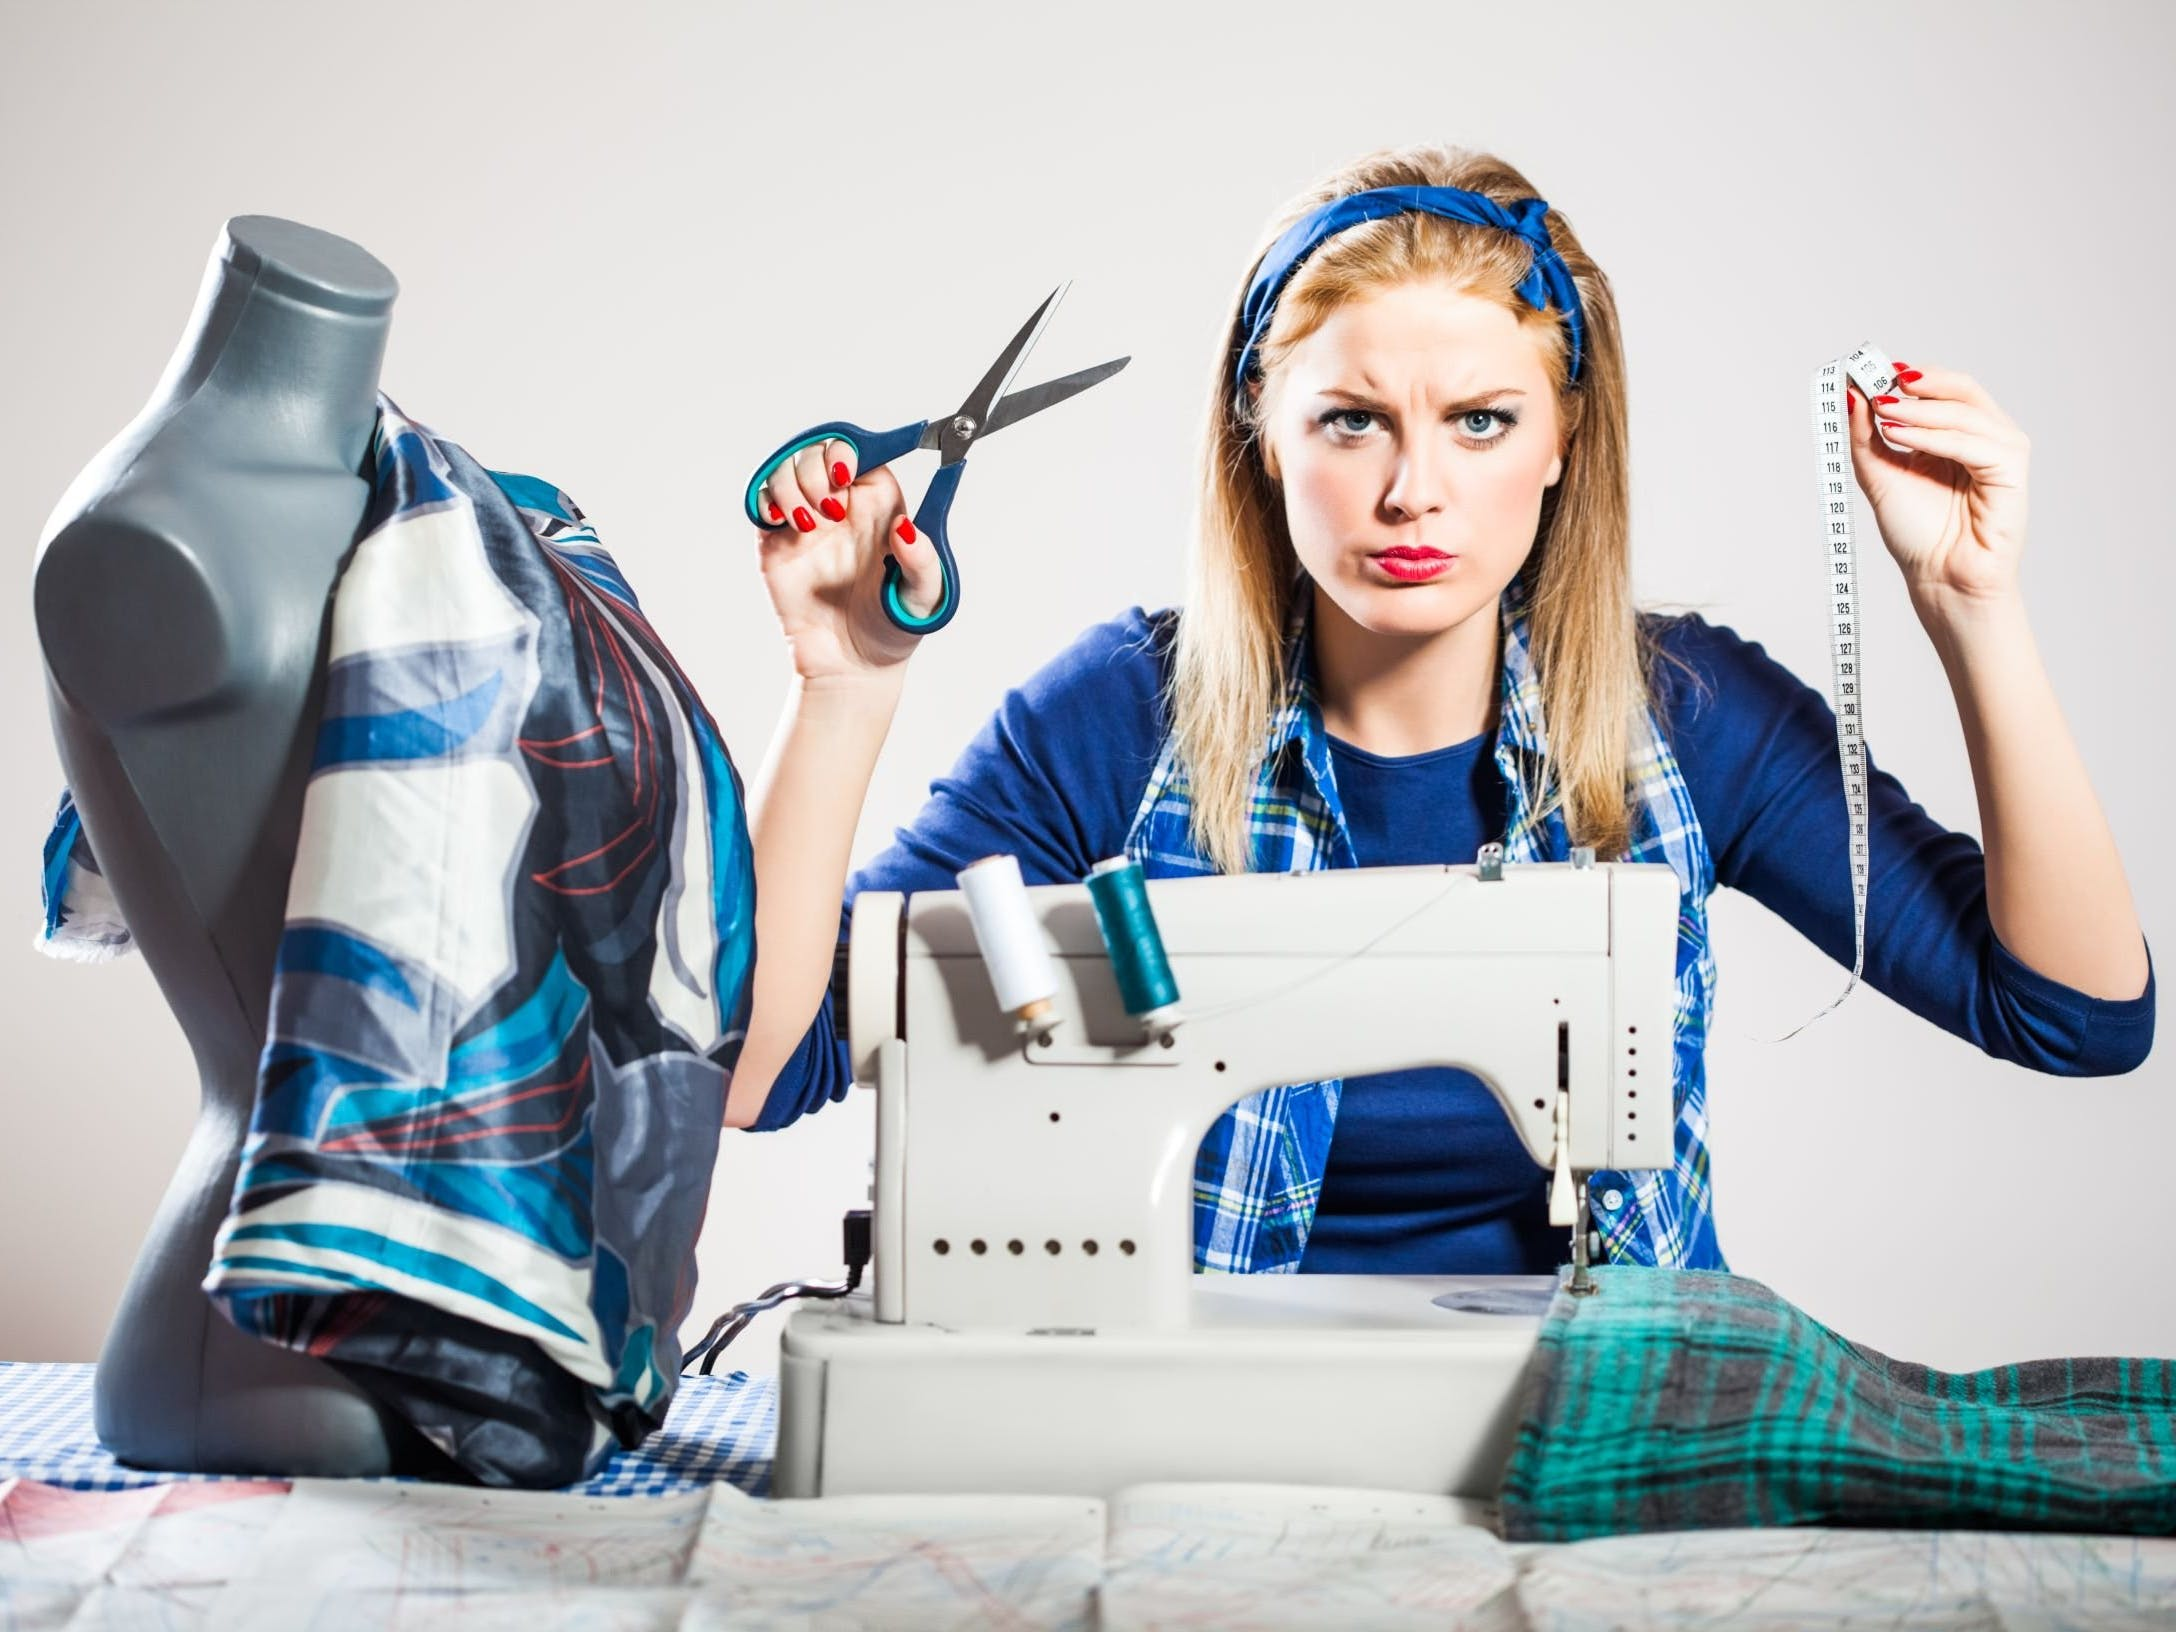 Your sewing adventure starts here!